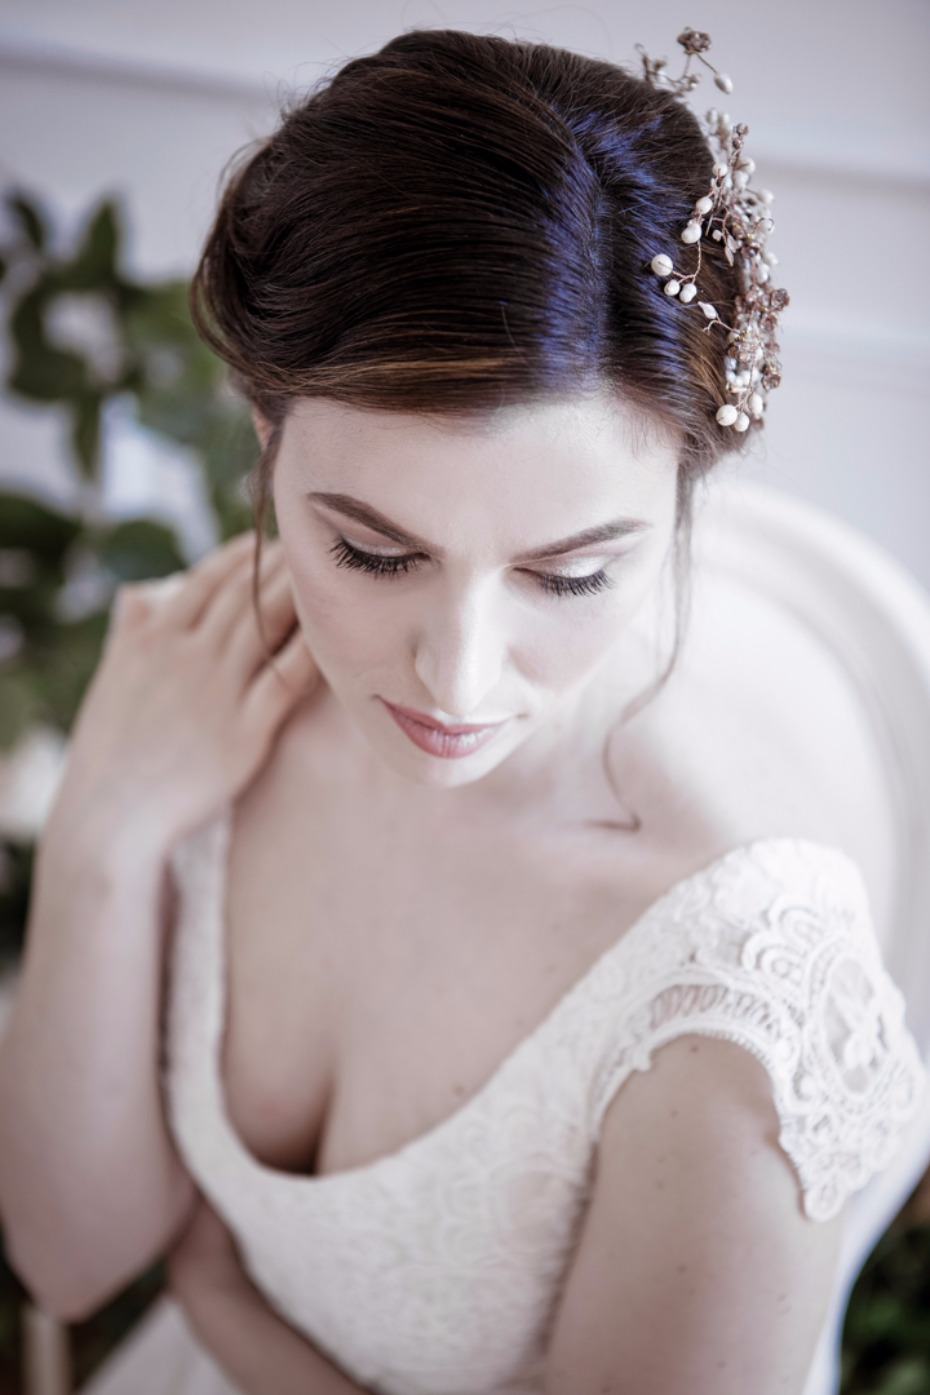 sweet and simple wedding style for your bridal look